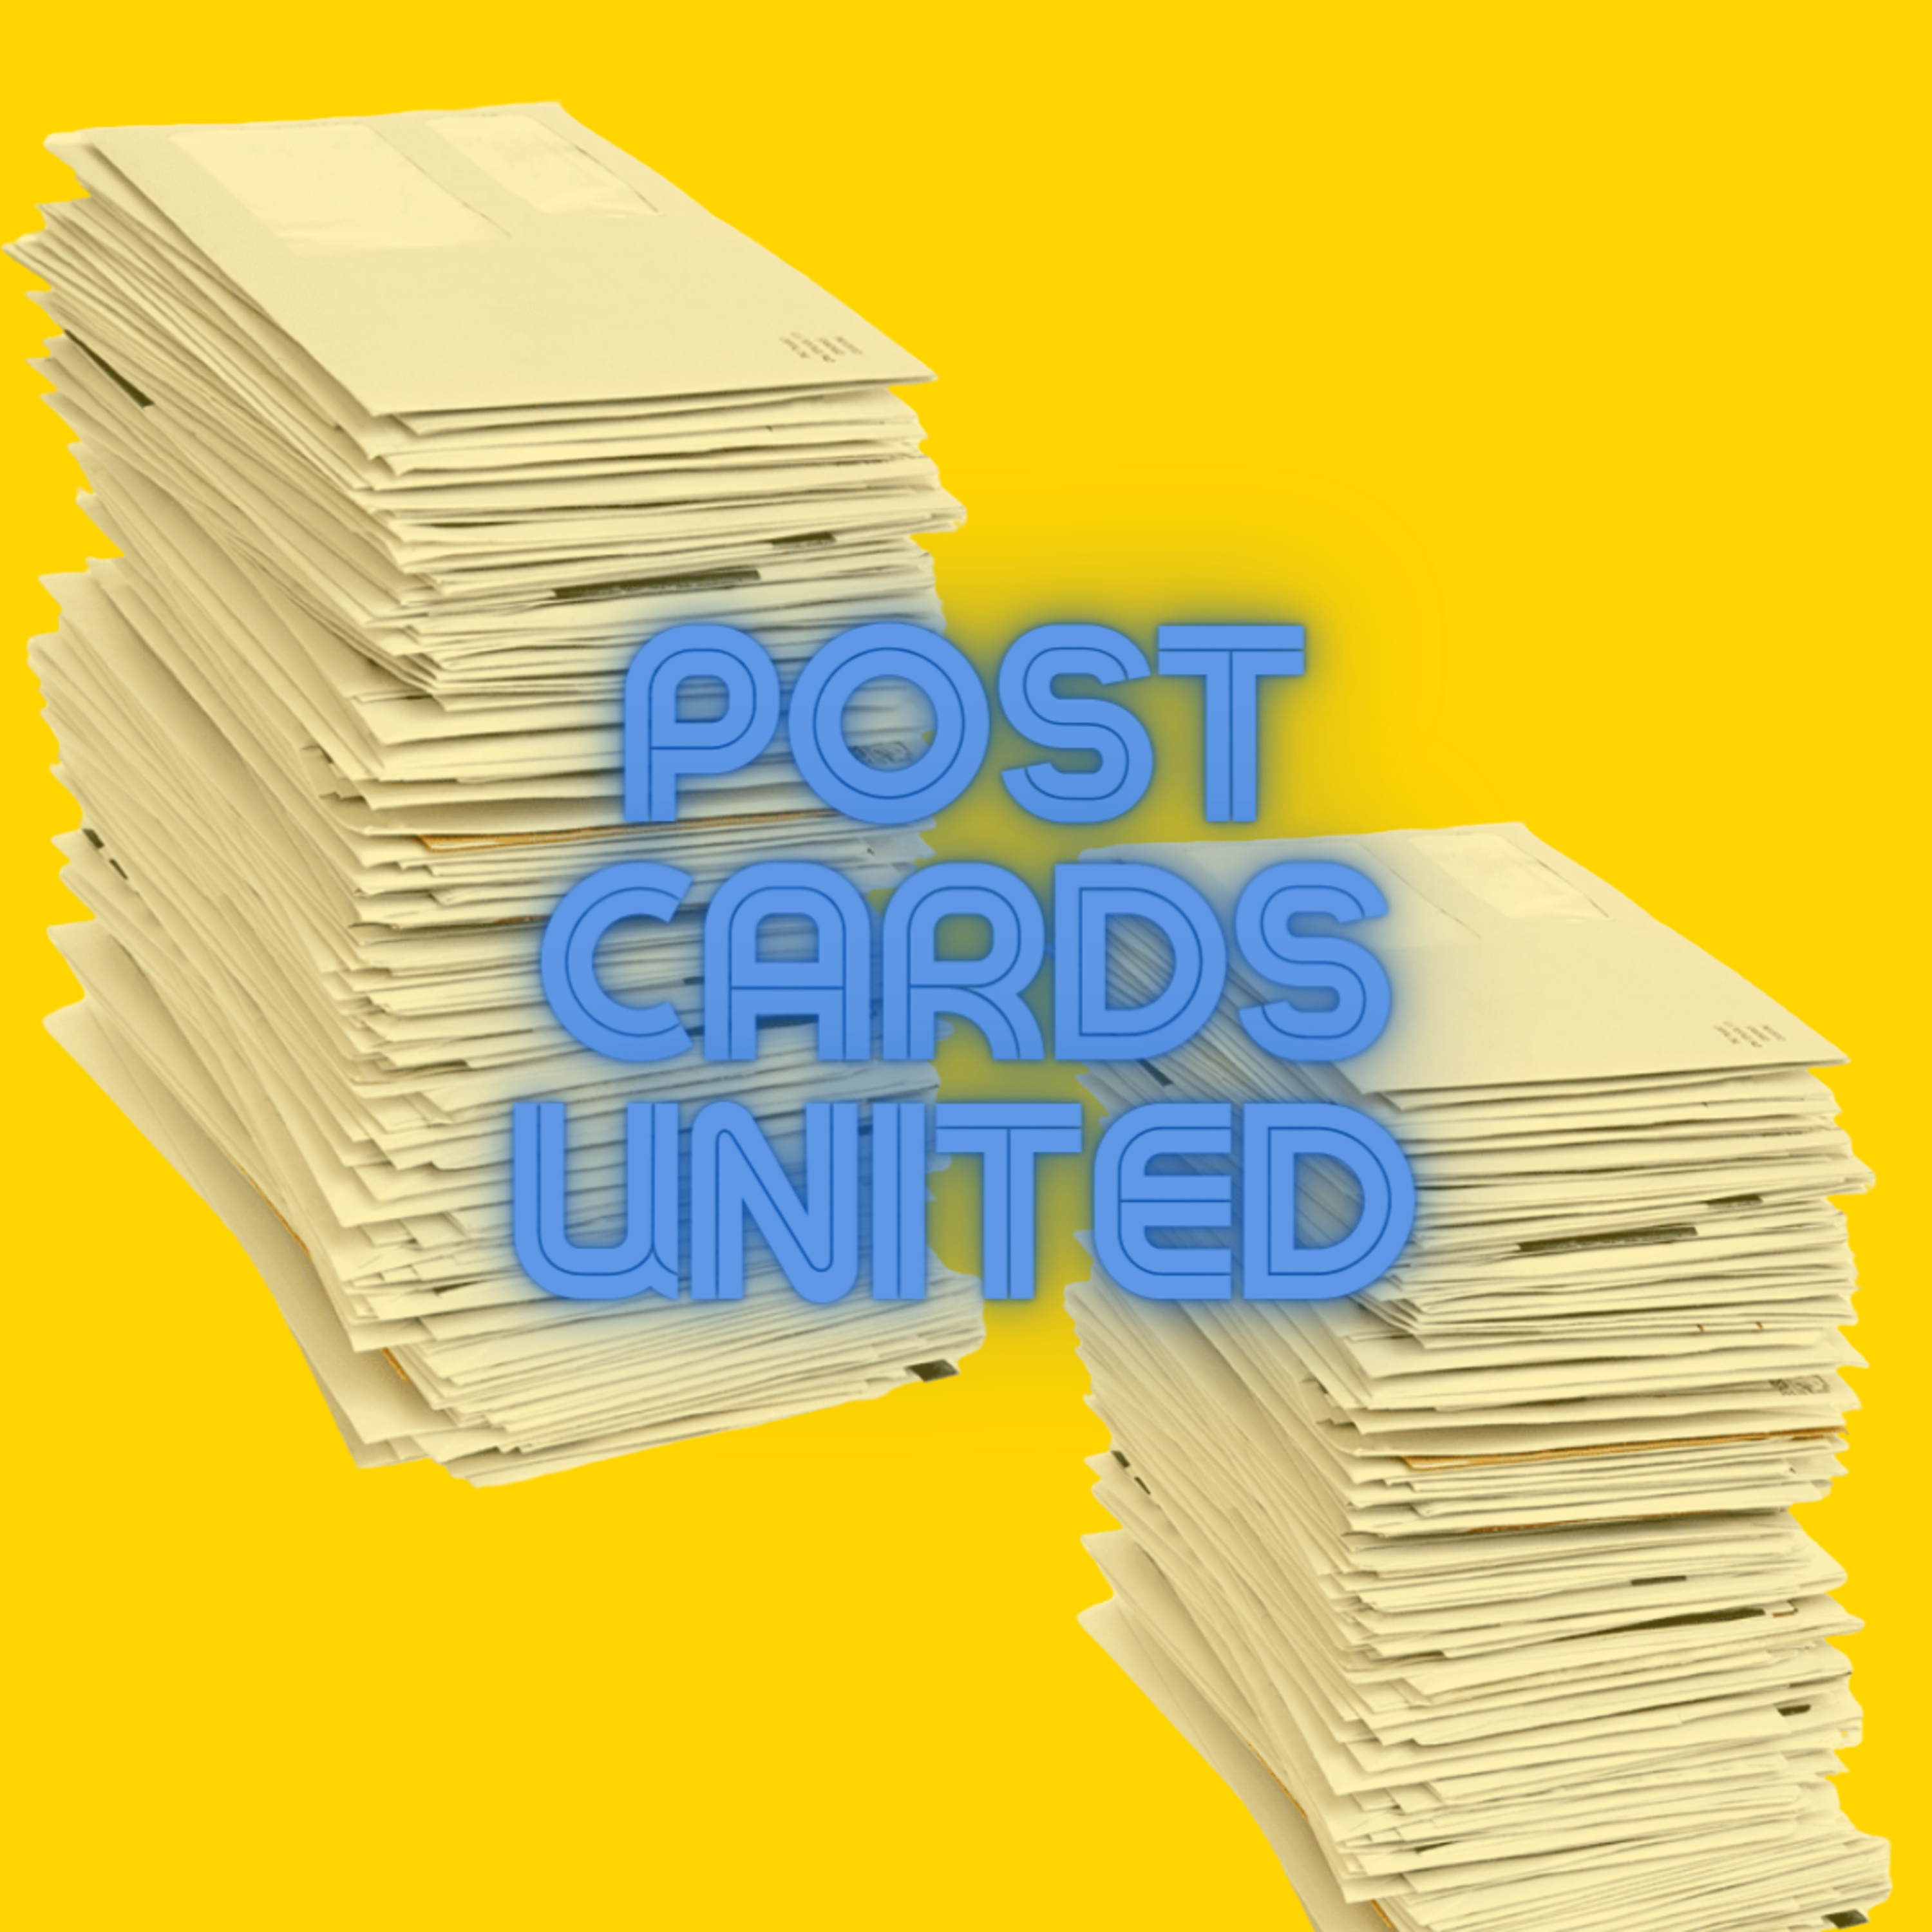 Post Cards United for Episode 55.